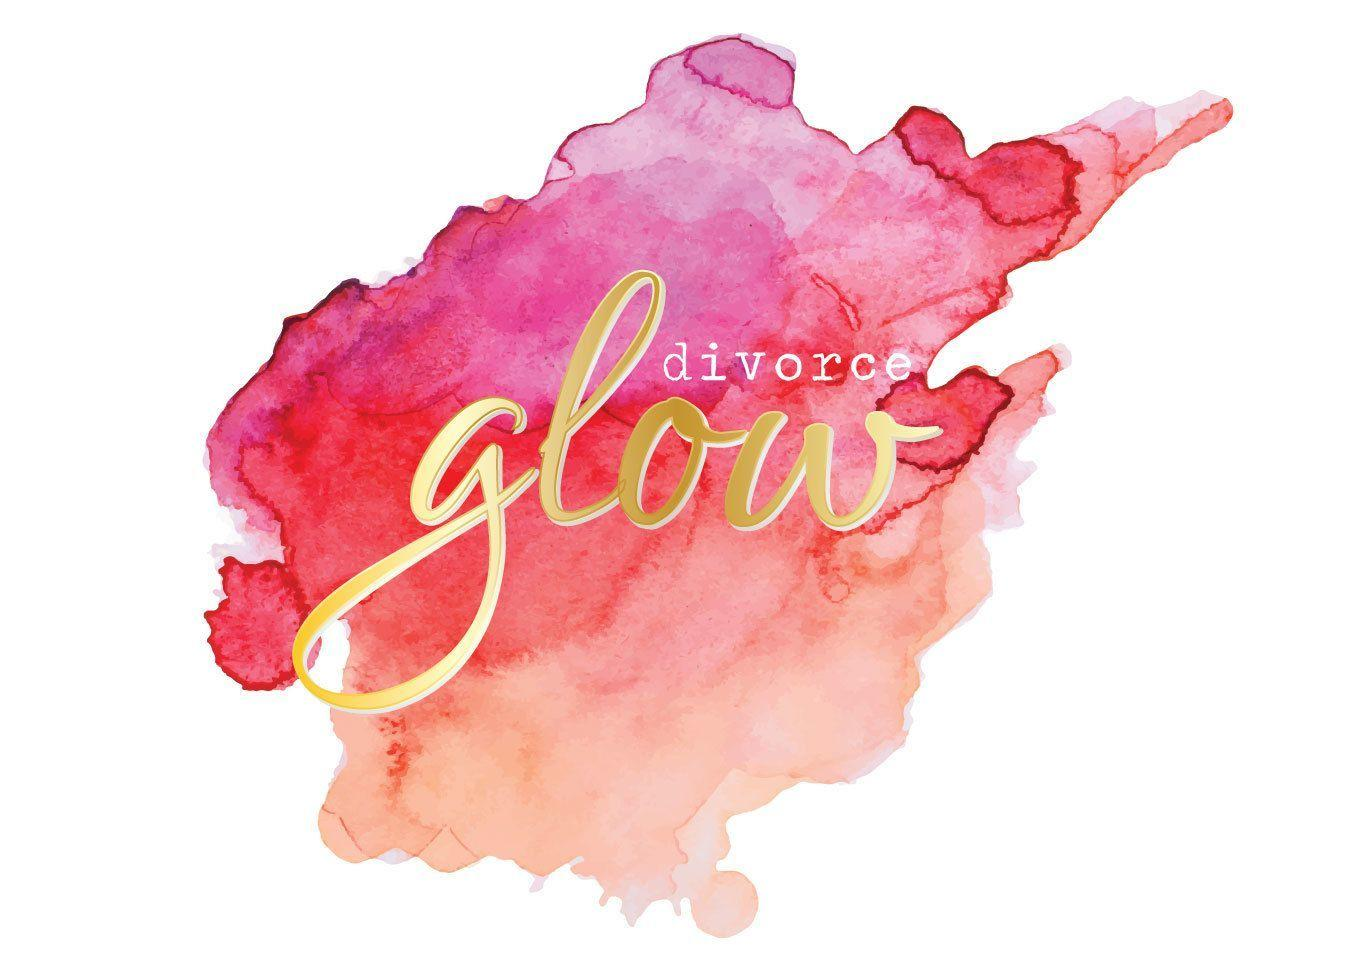 Divorce Glow - Come and Find Yourself